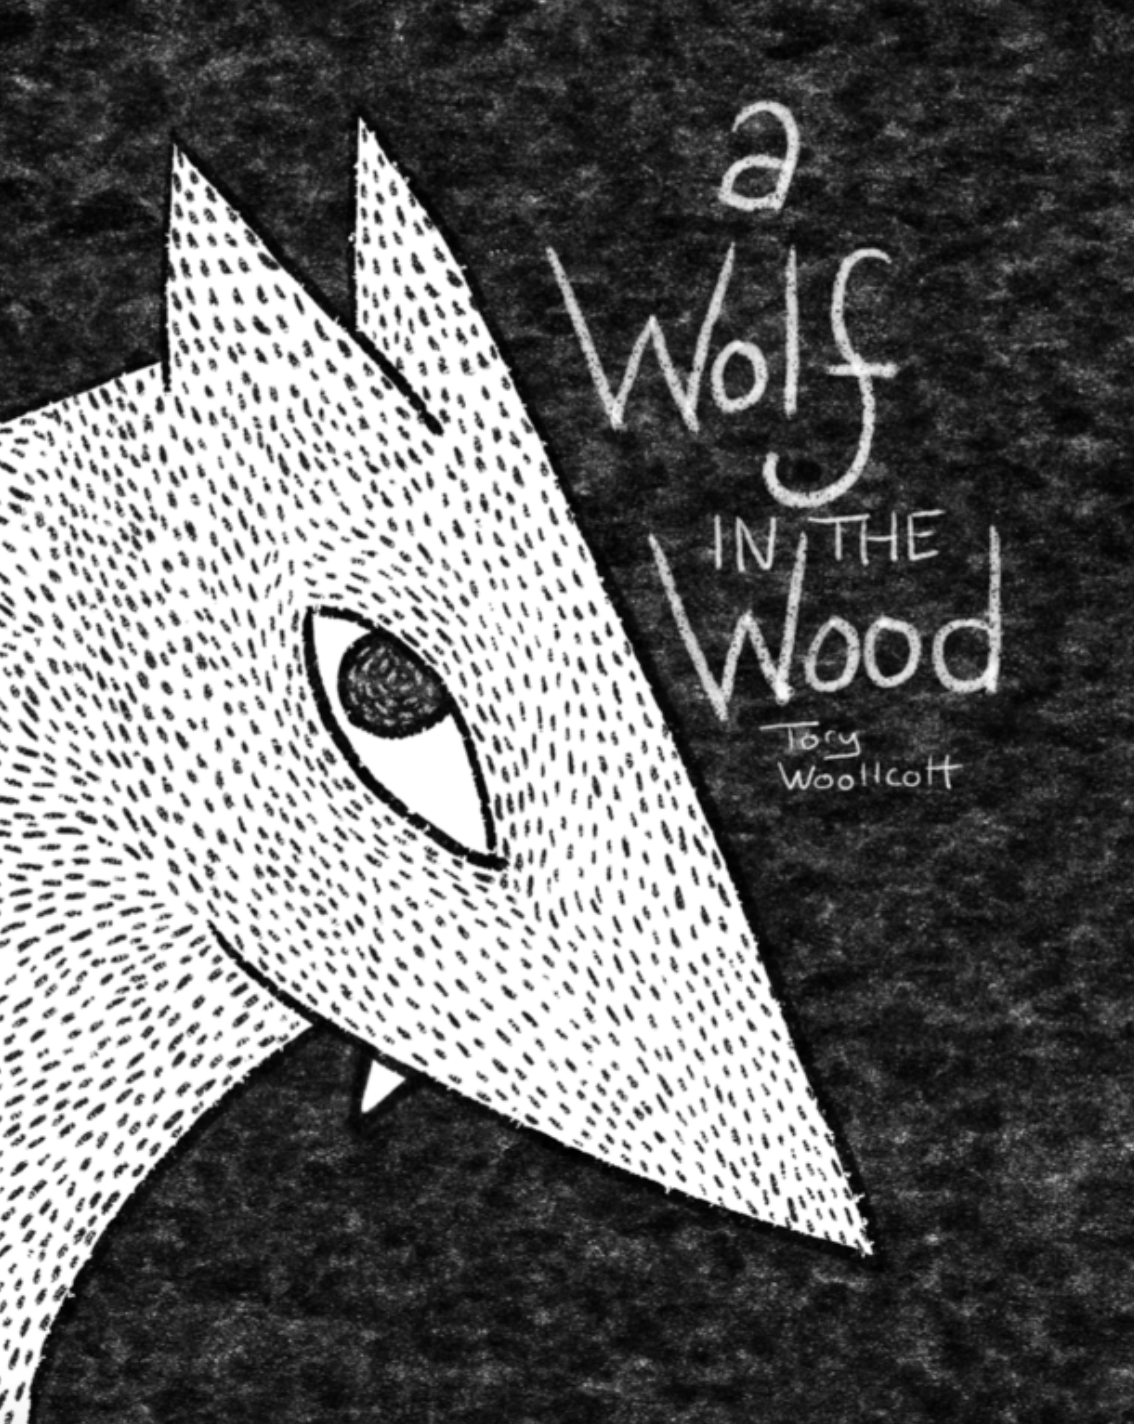 A Wolf in the Wood